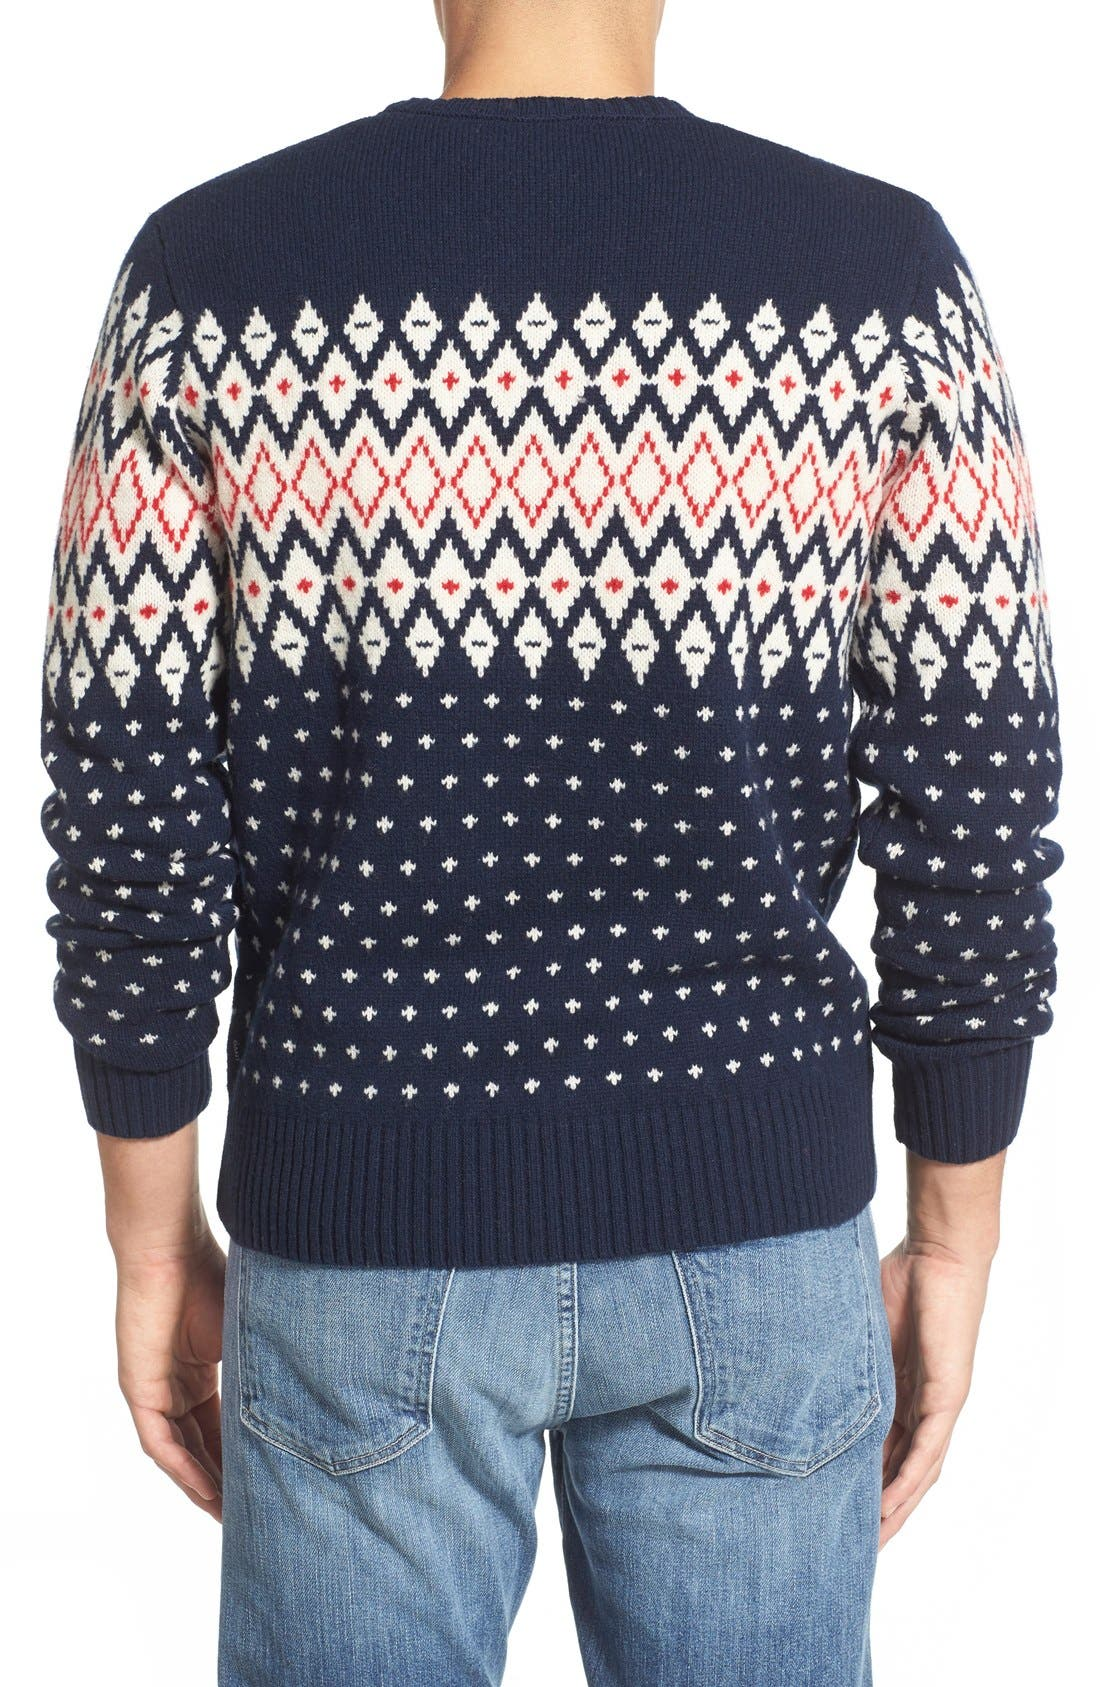 Lambswool Fair Isle Crewneck Sweater,                             Alternate thumbnail 4, color,